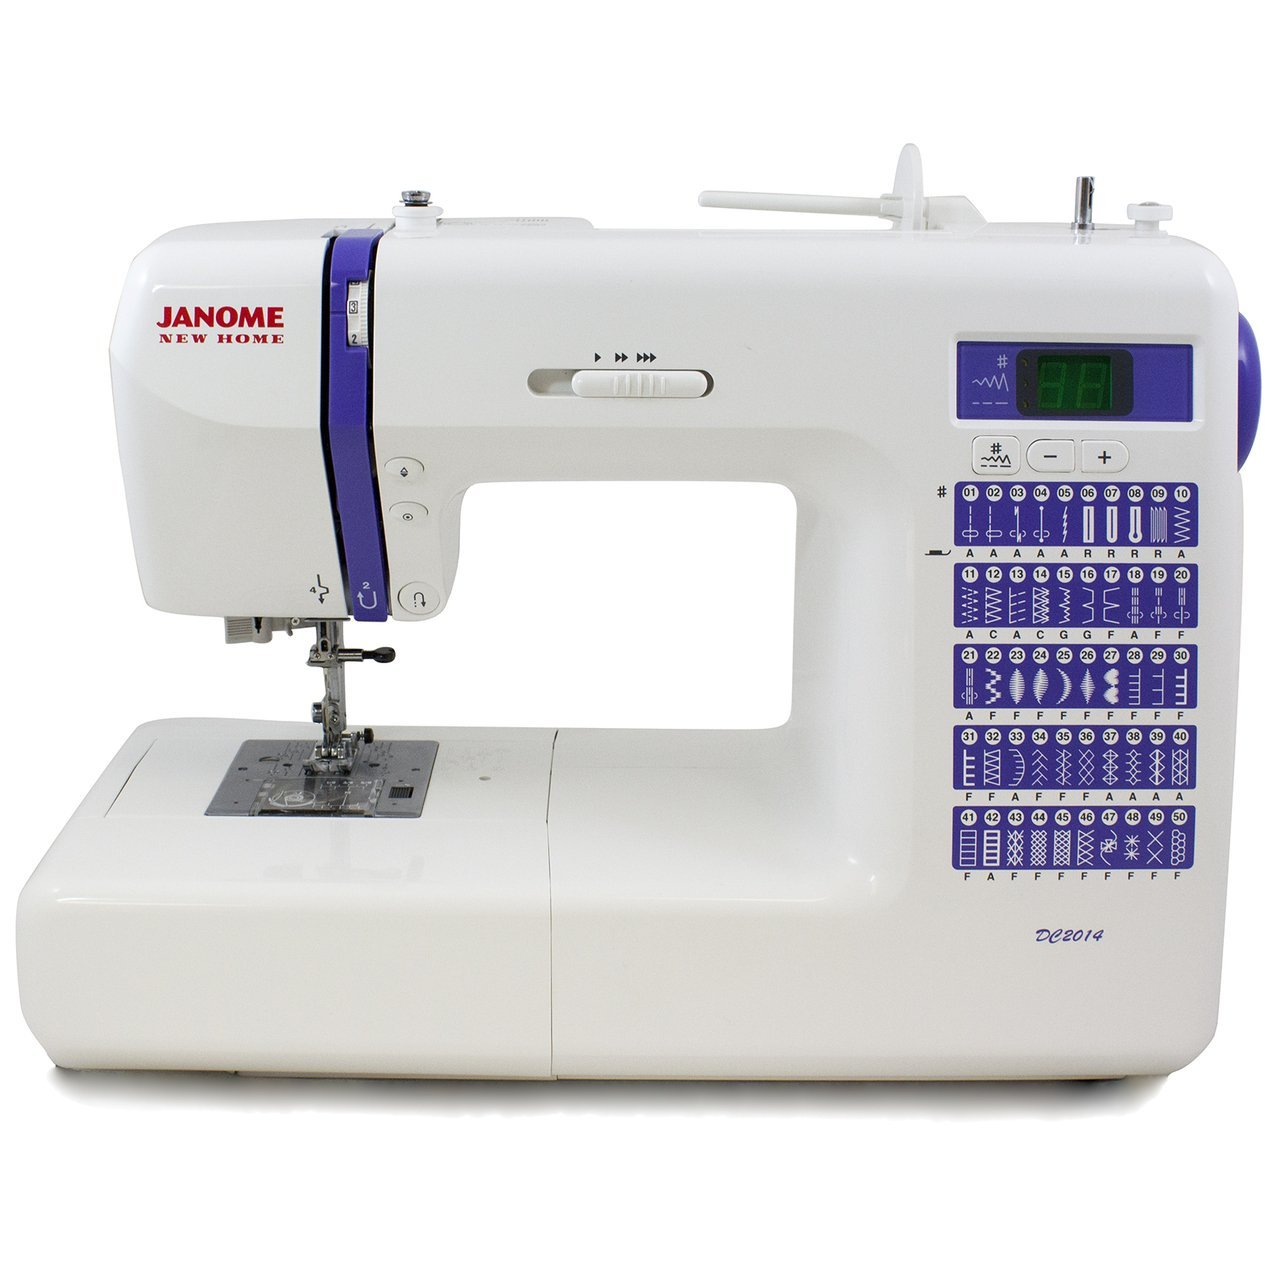 Top 10 Best Sewing Machines For Denim And Jeans To Buy in ...